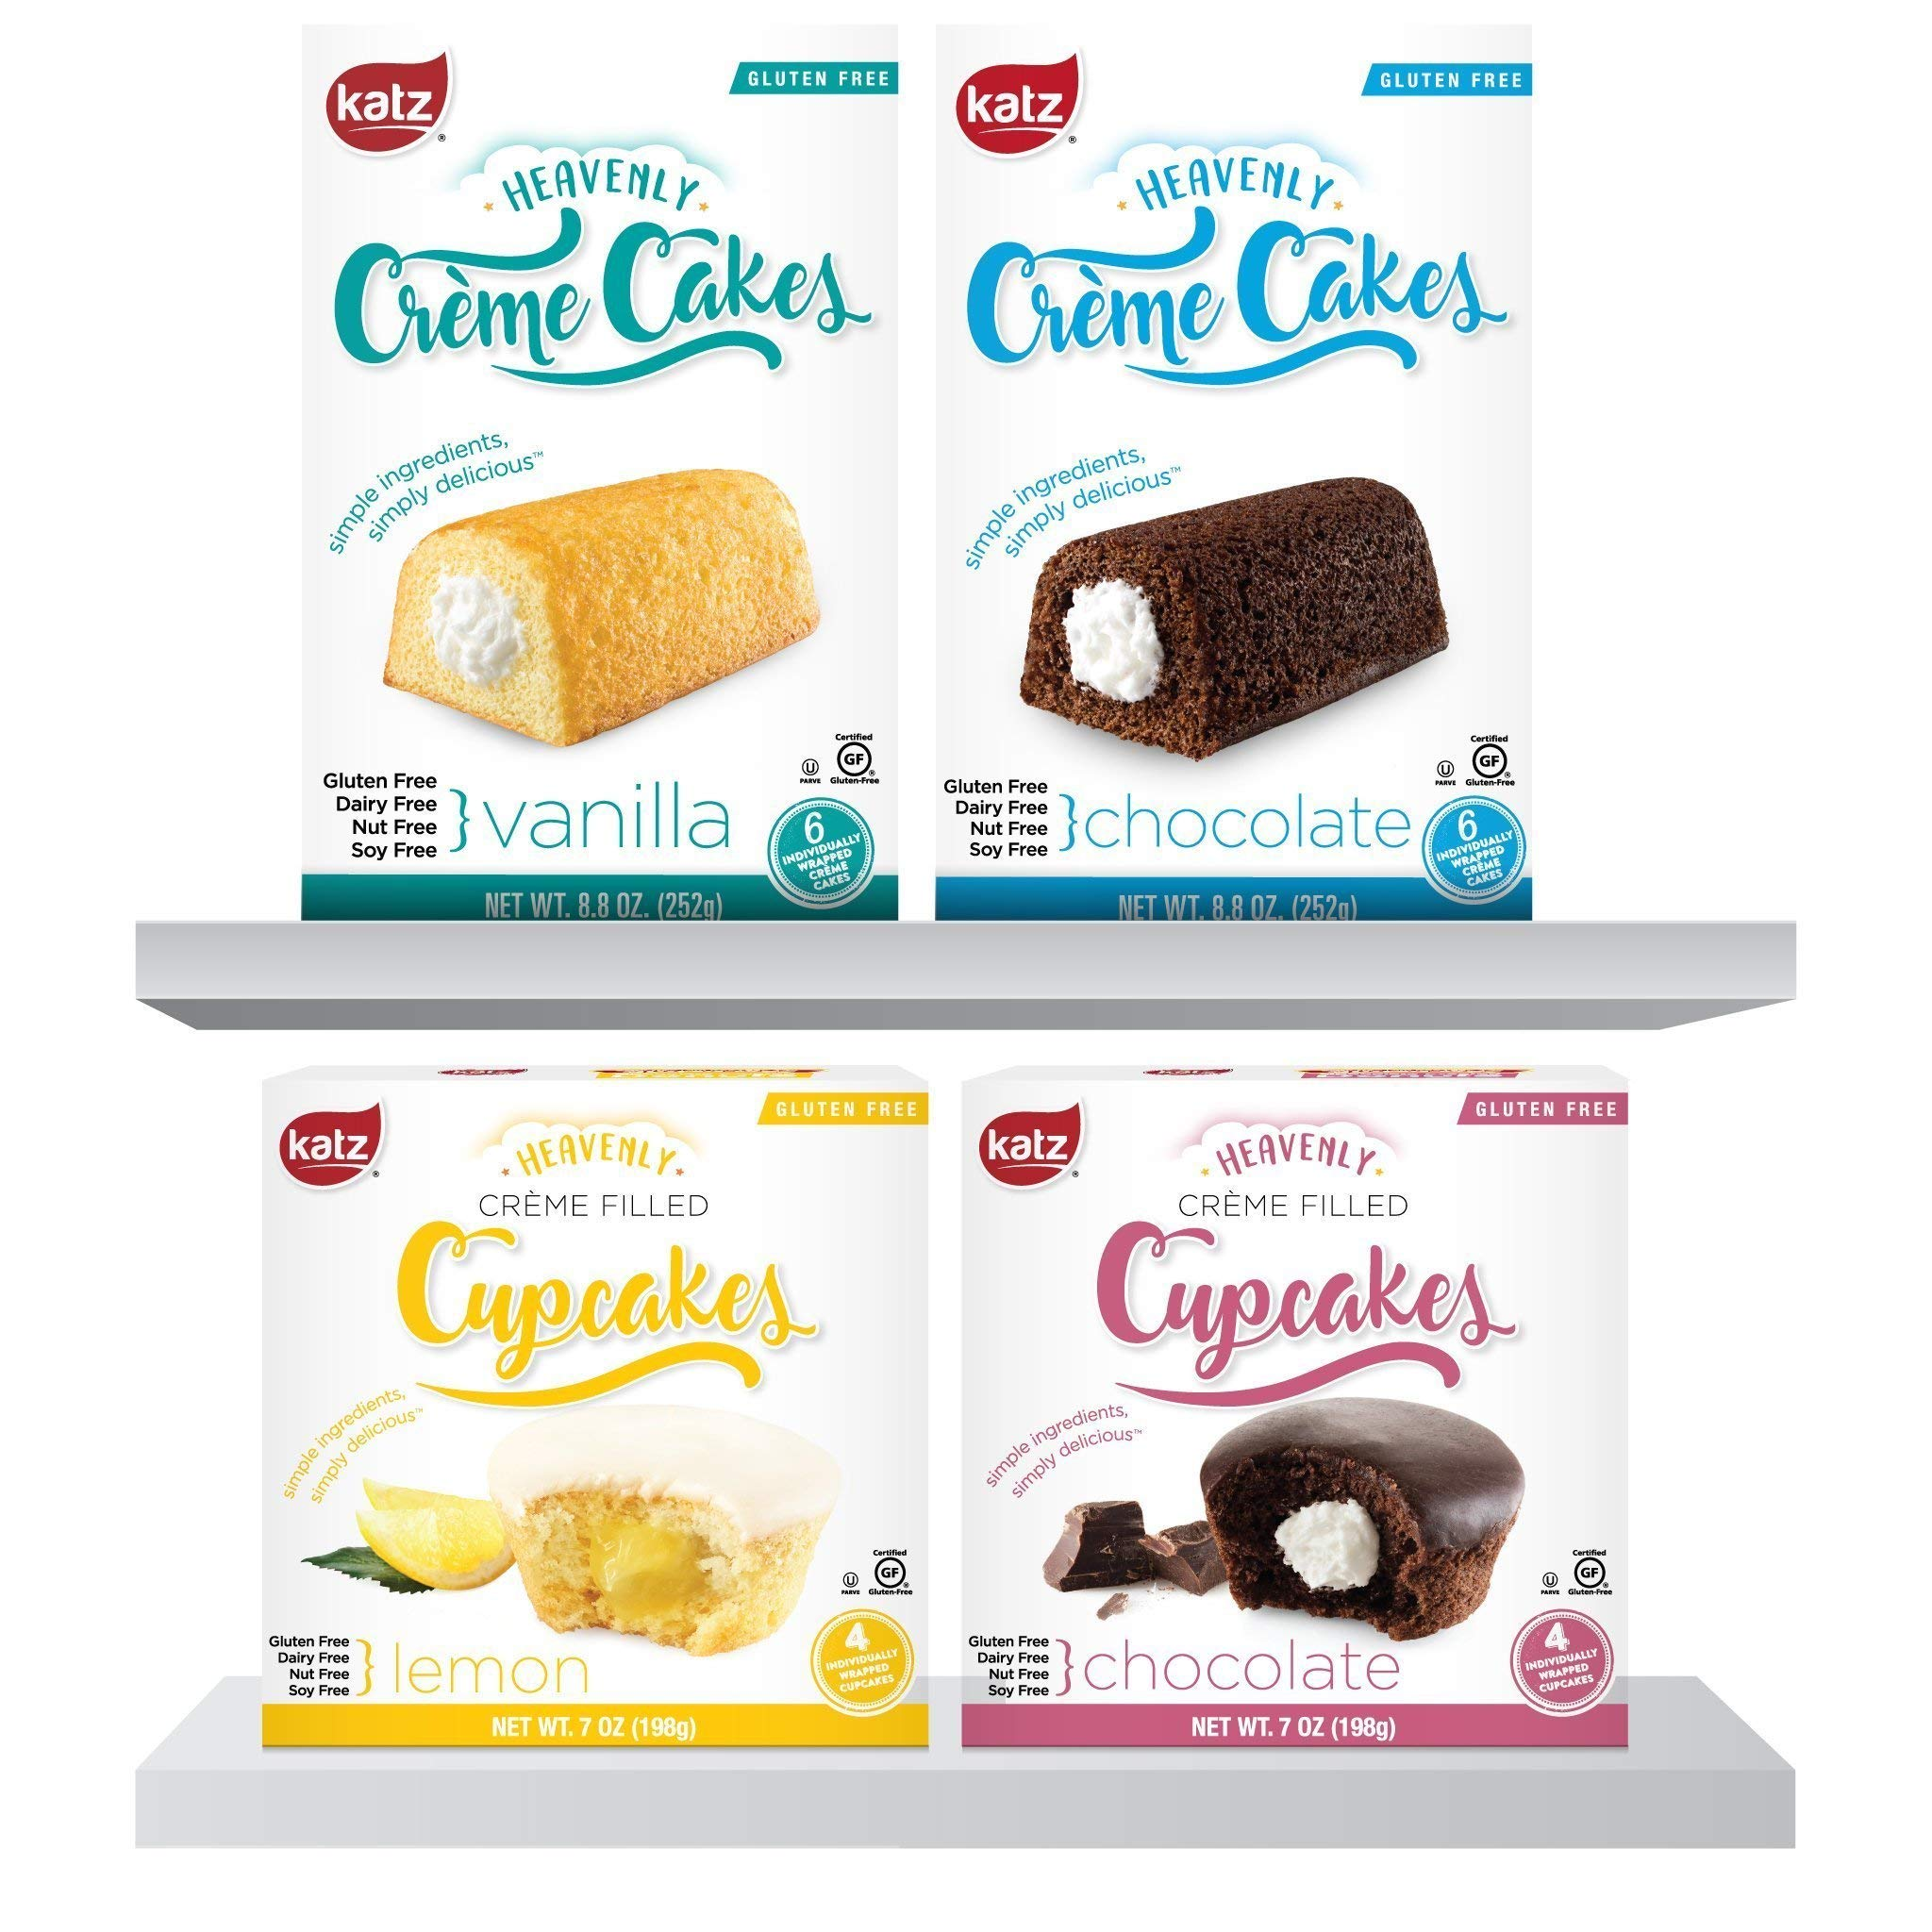 Katz Gluten Free Heavenly Creme Cake Variety Pack | Chocolate & Vanilla Creme Cake, Chocolate & Lemon Cupcake | Dairy, Nut, Soy and Gluten Free | Kosher (1 Pack of each) by Katz Gluten Free